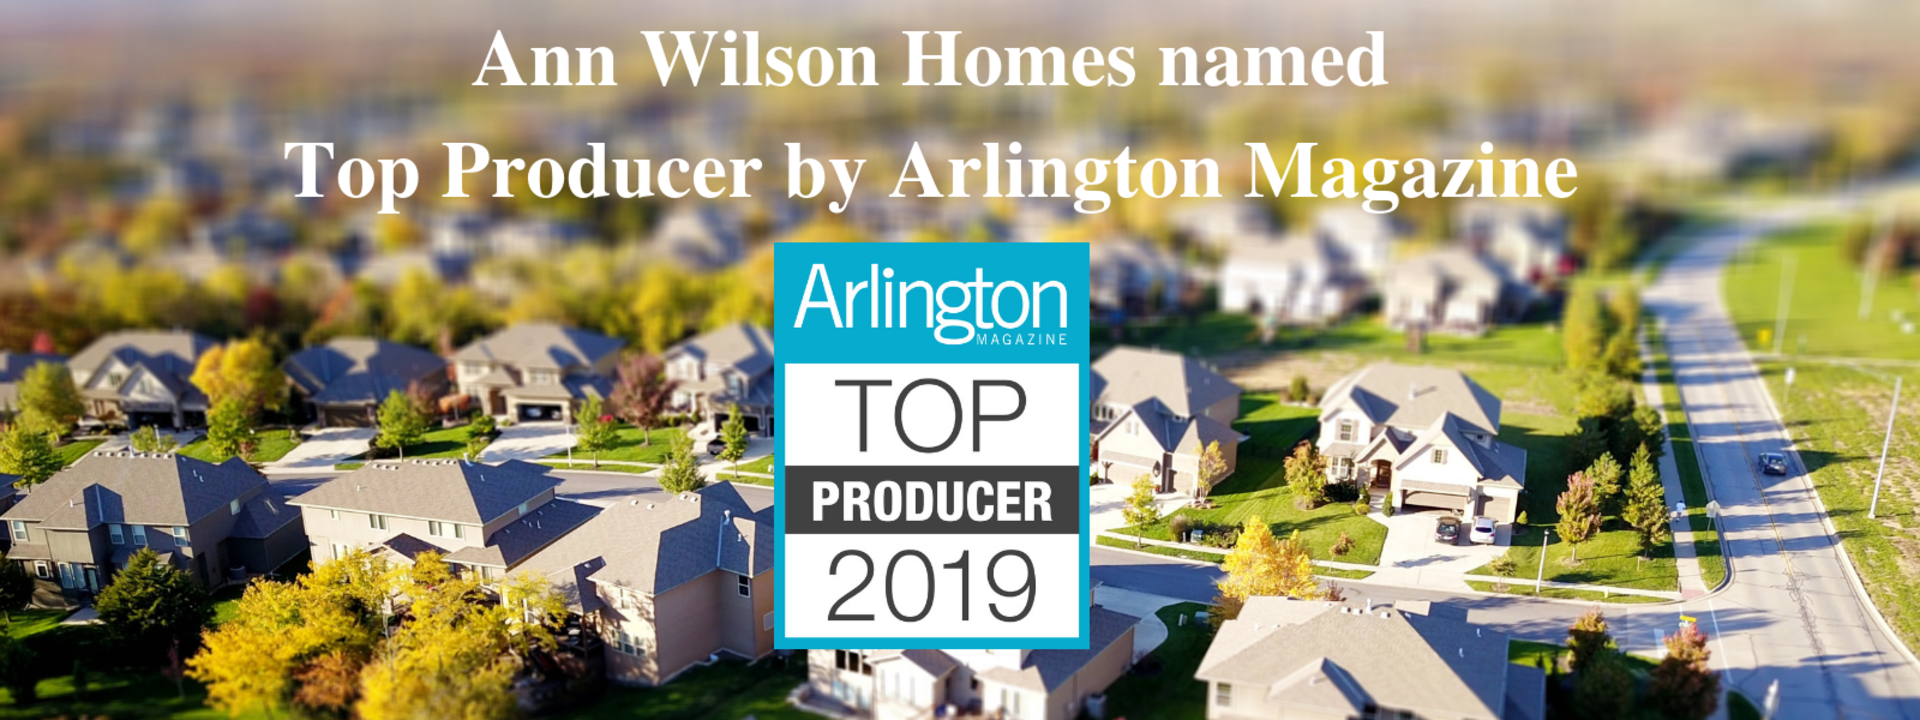 Ann Wilson Homes named Top Producer in Arlington Magazine's March/April 2019 Home issue